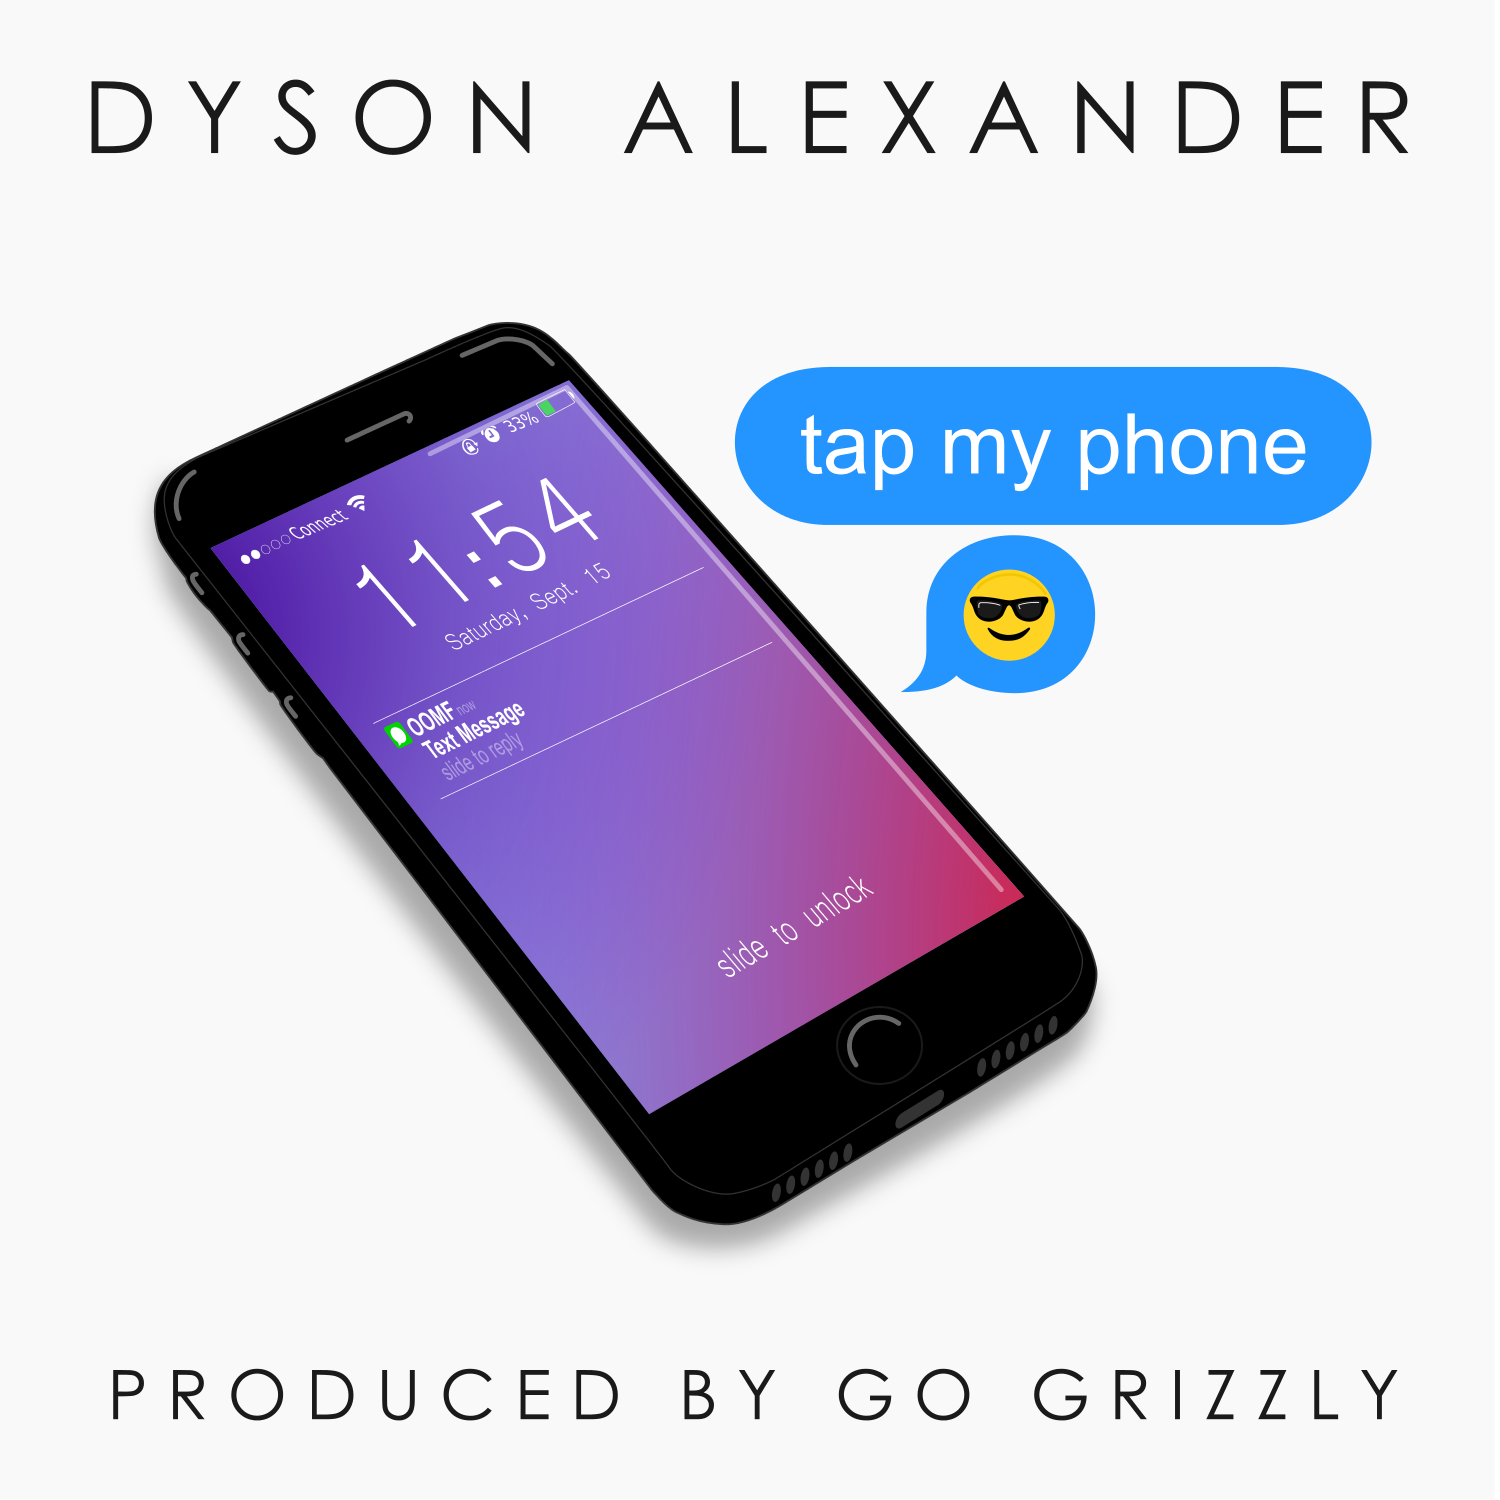 dyson-alexander-tap-my-phone